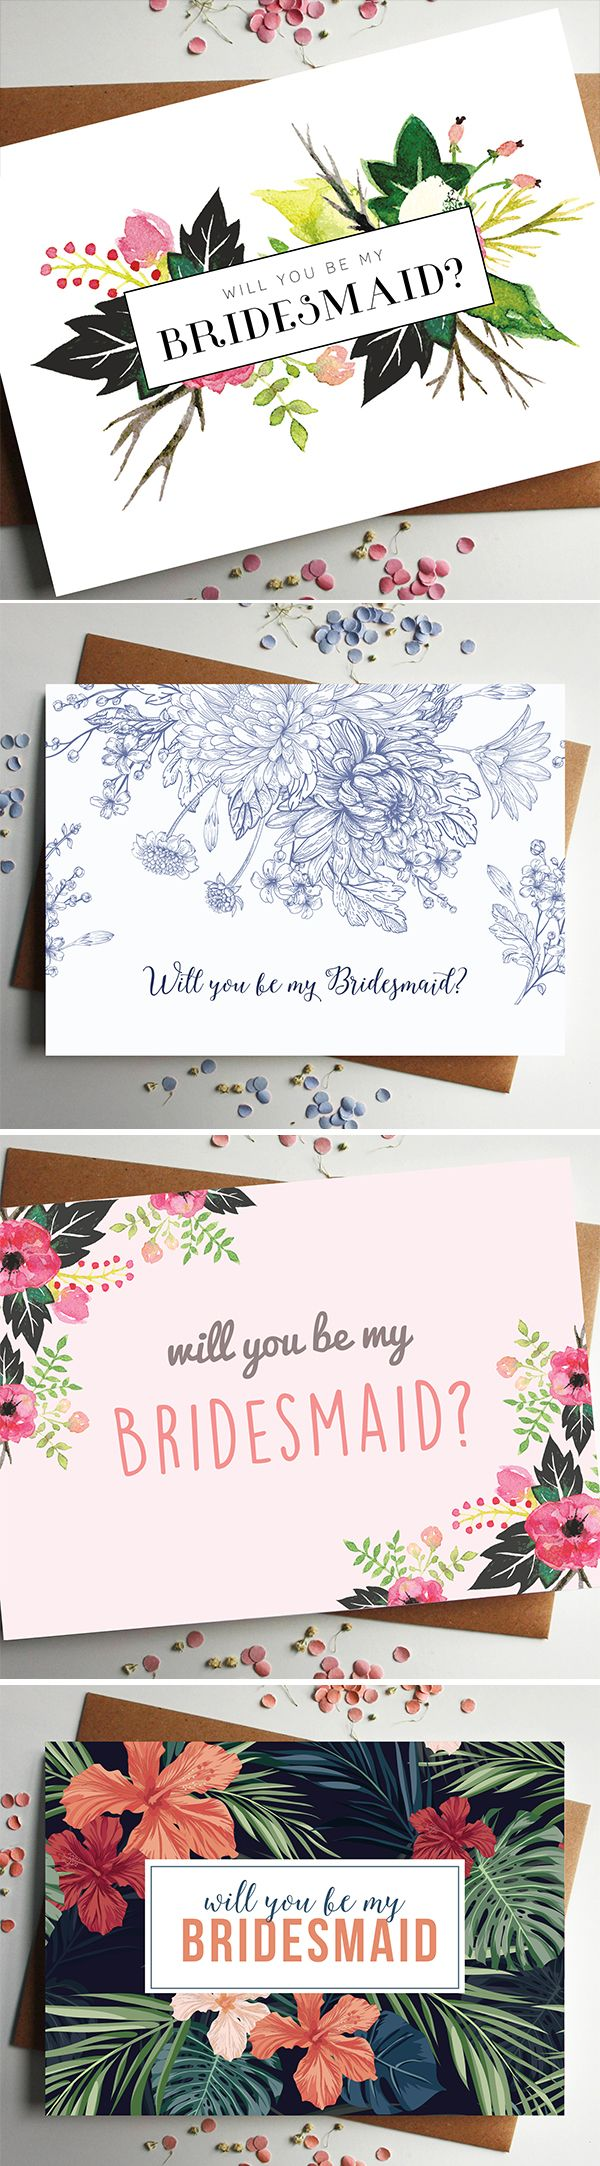 A beautiful floral 'will you be my bridesmaid?' card, perfect for asking your nearest and dearest to play a special role in your big day.  This card features illustrated flowers and two lovely typefaces for a friendly, personal feel and will bring a lovely smile to the face of the lucky person. Perfect for popping the big question to your best friends and it can even be kept as a little memento of the big day.   https://www.etsy.com/uk/listing/276488748/will-you-be-my-bridesmaid-card?ref=rel